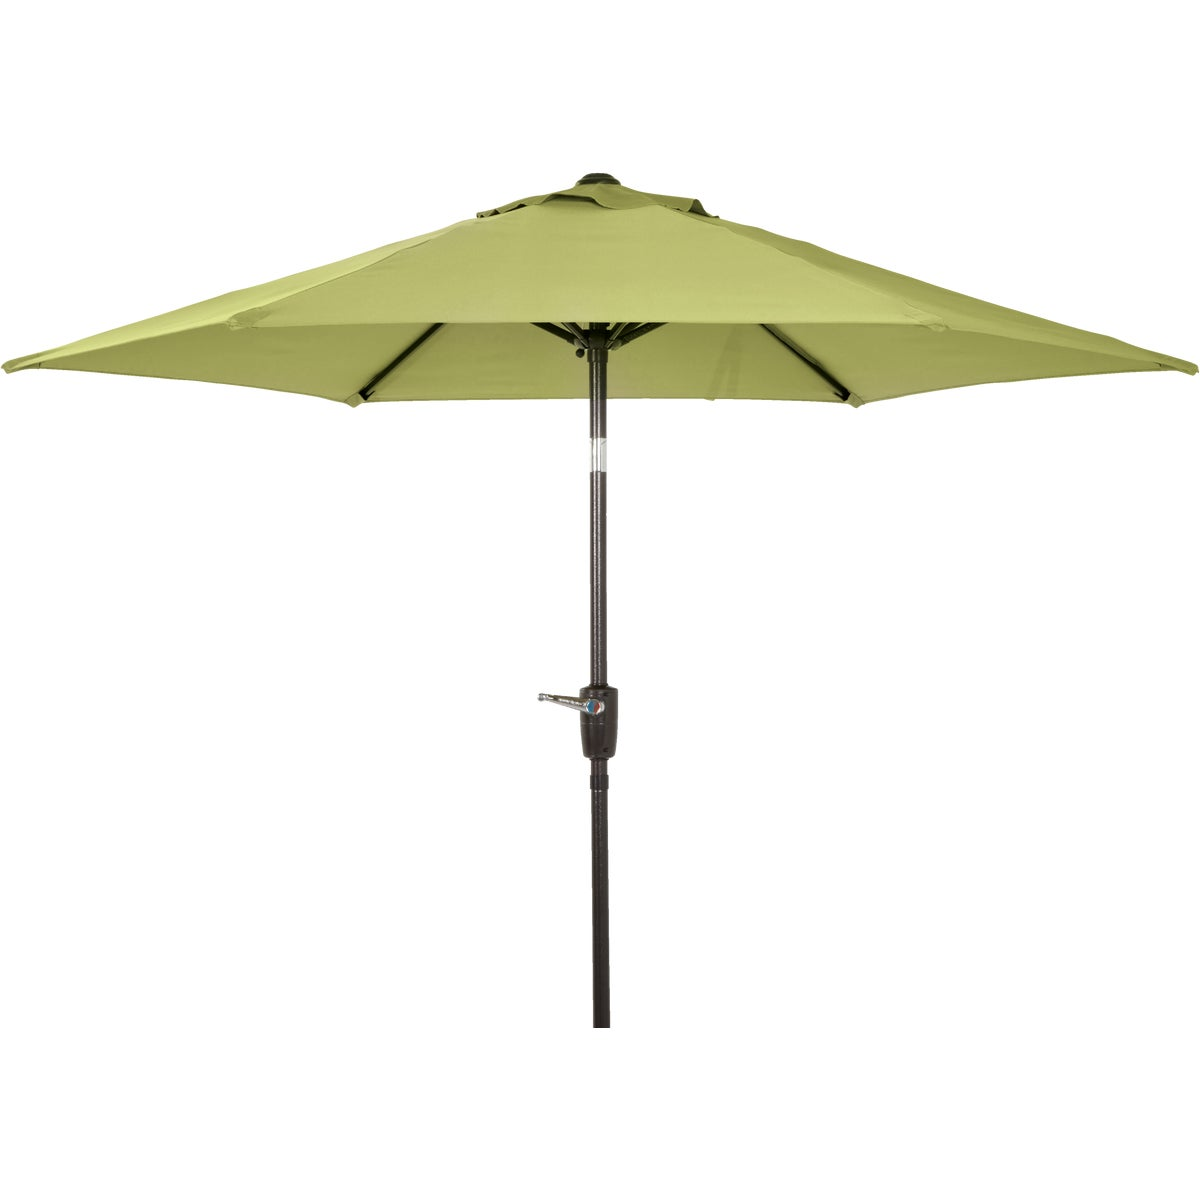 7.5' SAGE UMBRELLA - TJAU-004A-230-SGE by Do it Best